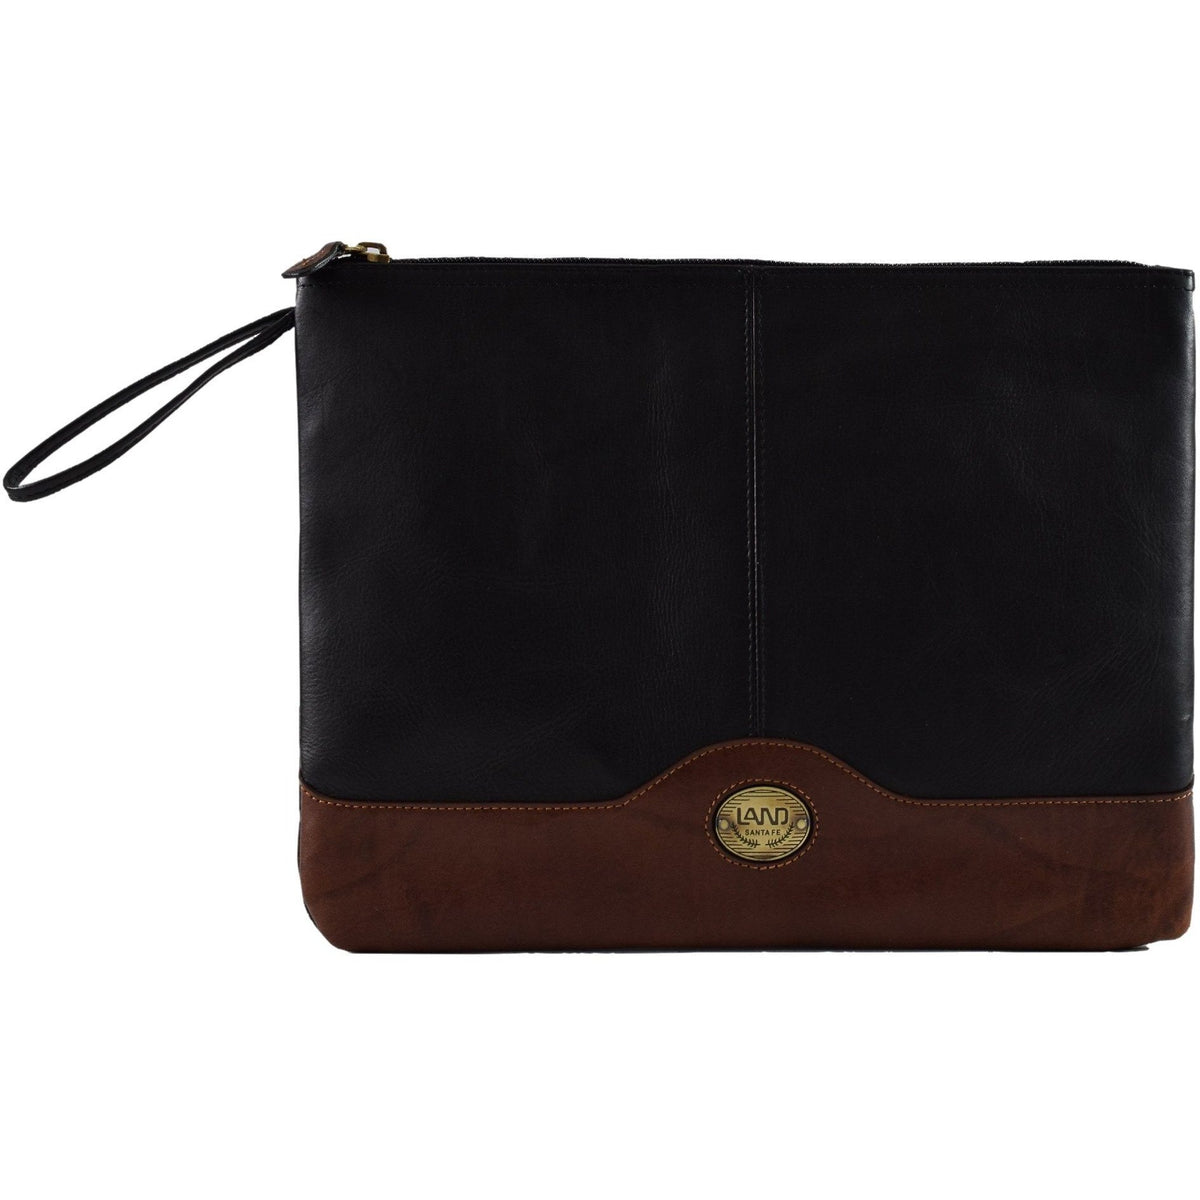 Santa Fe Wristlet Envelope, Wristlet | LAND Leather